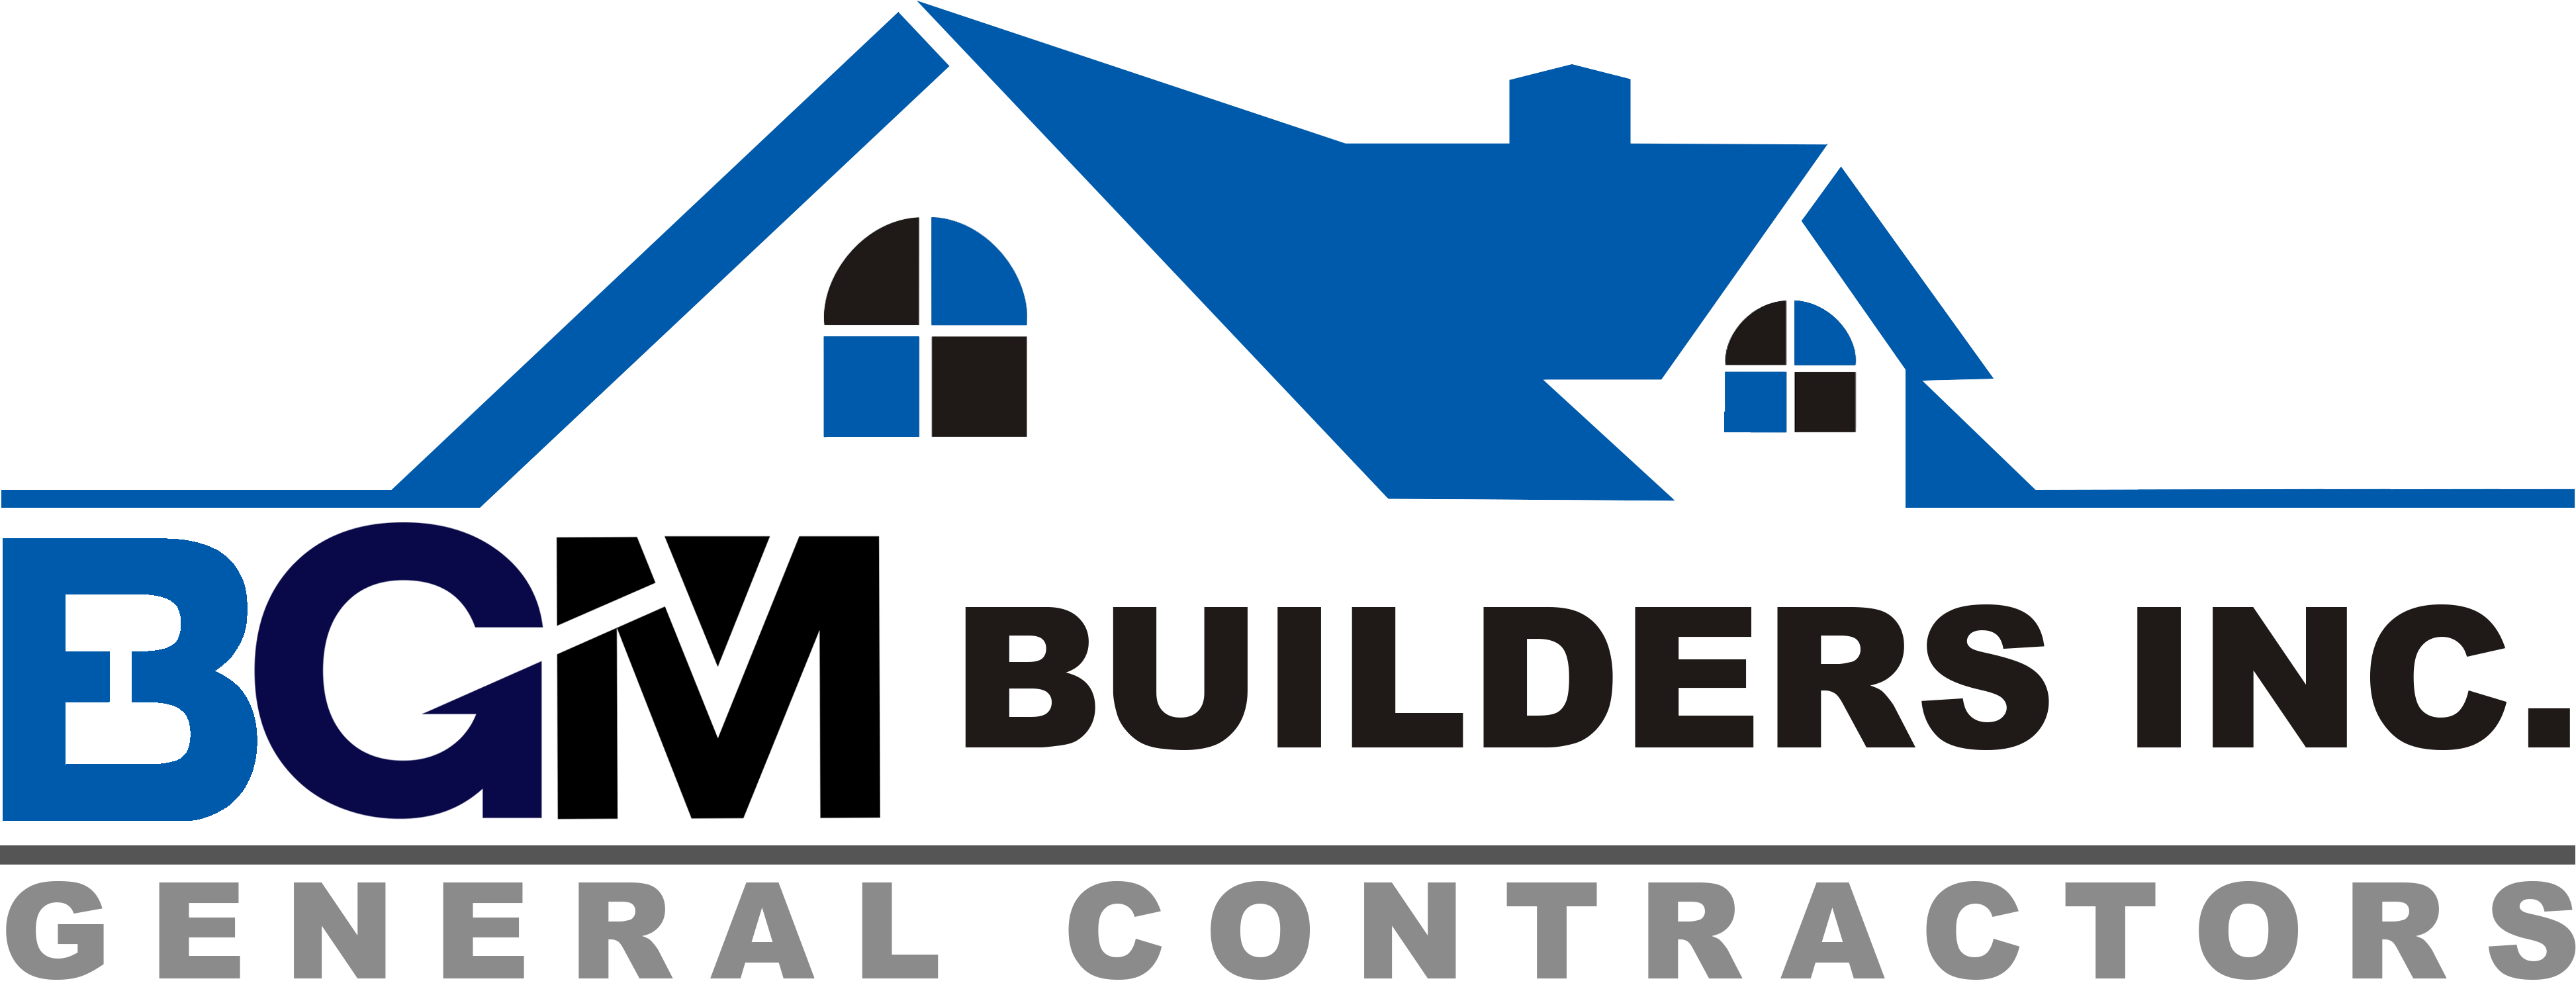 BGM General Contractors & Builders, Inc.